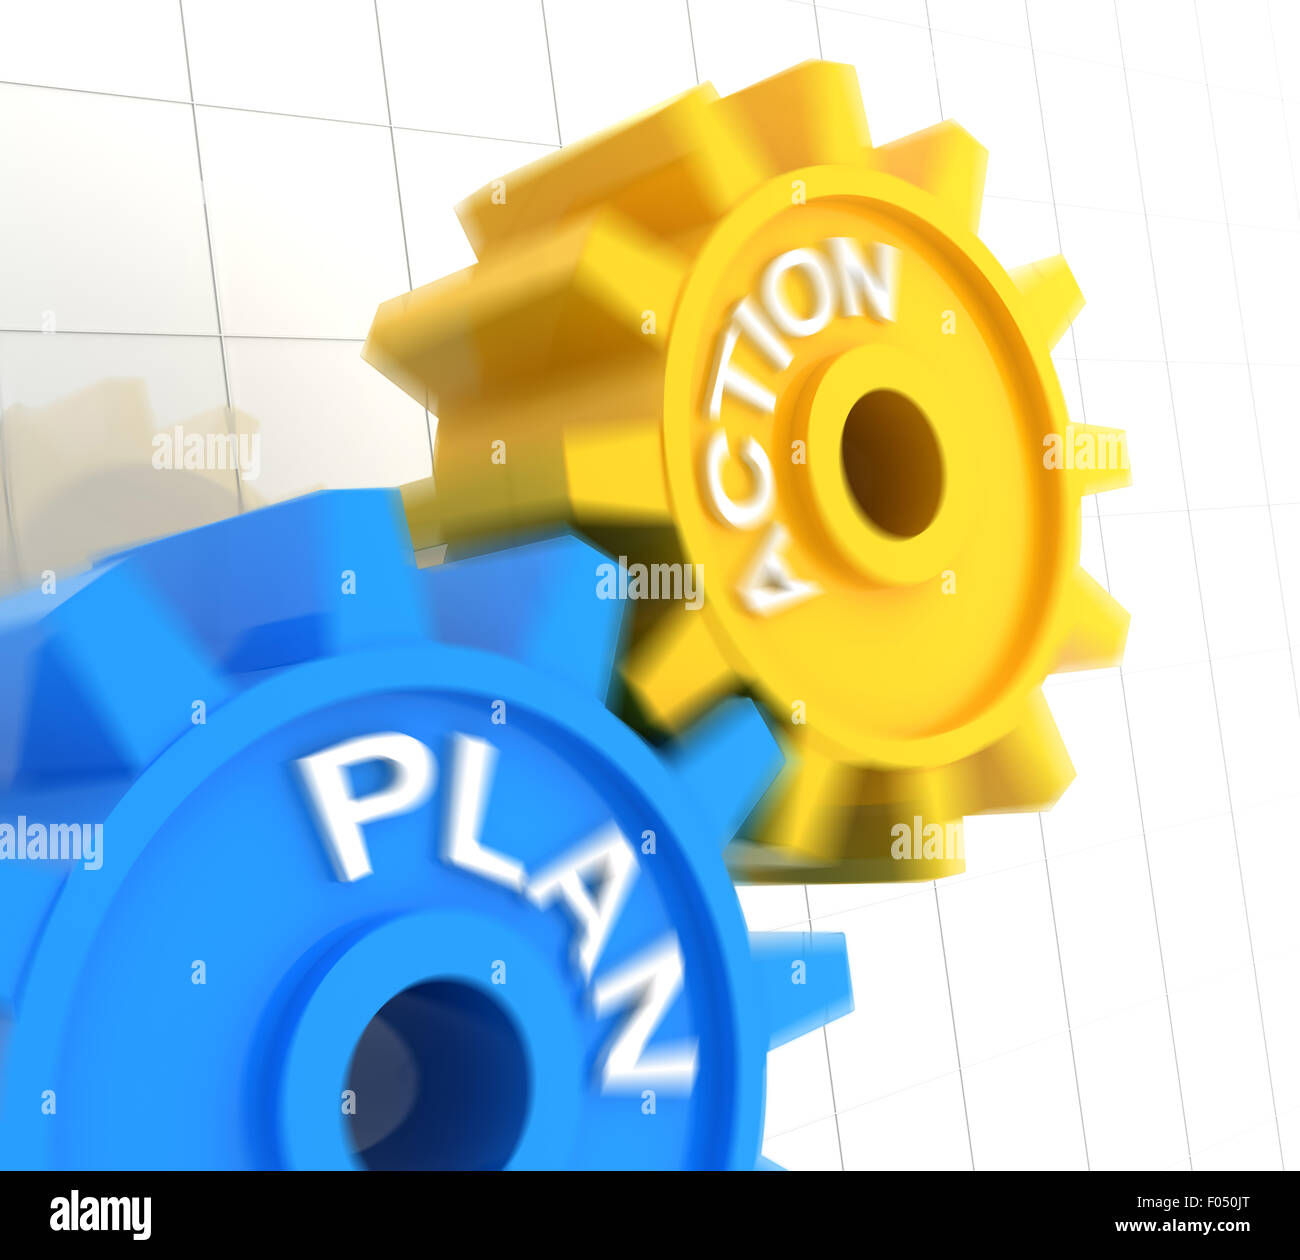 Plan and action - Stock Image